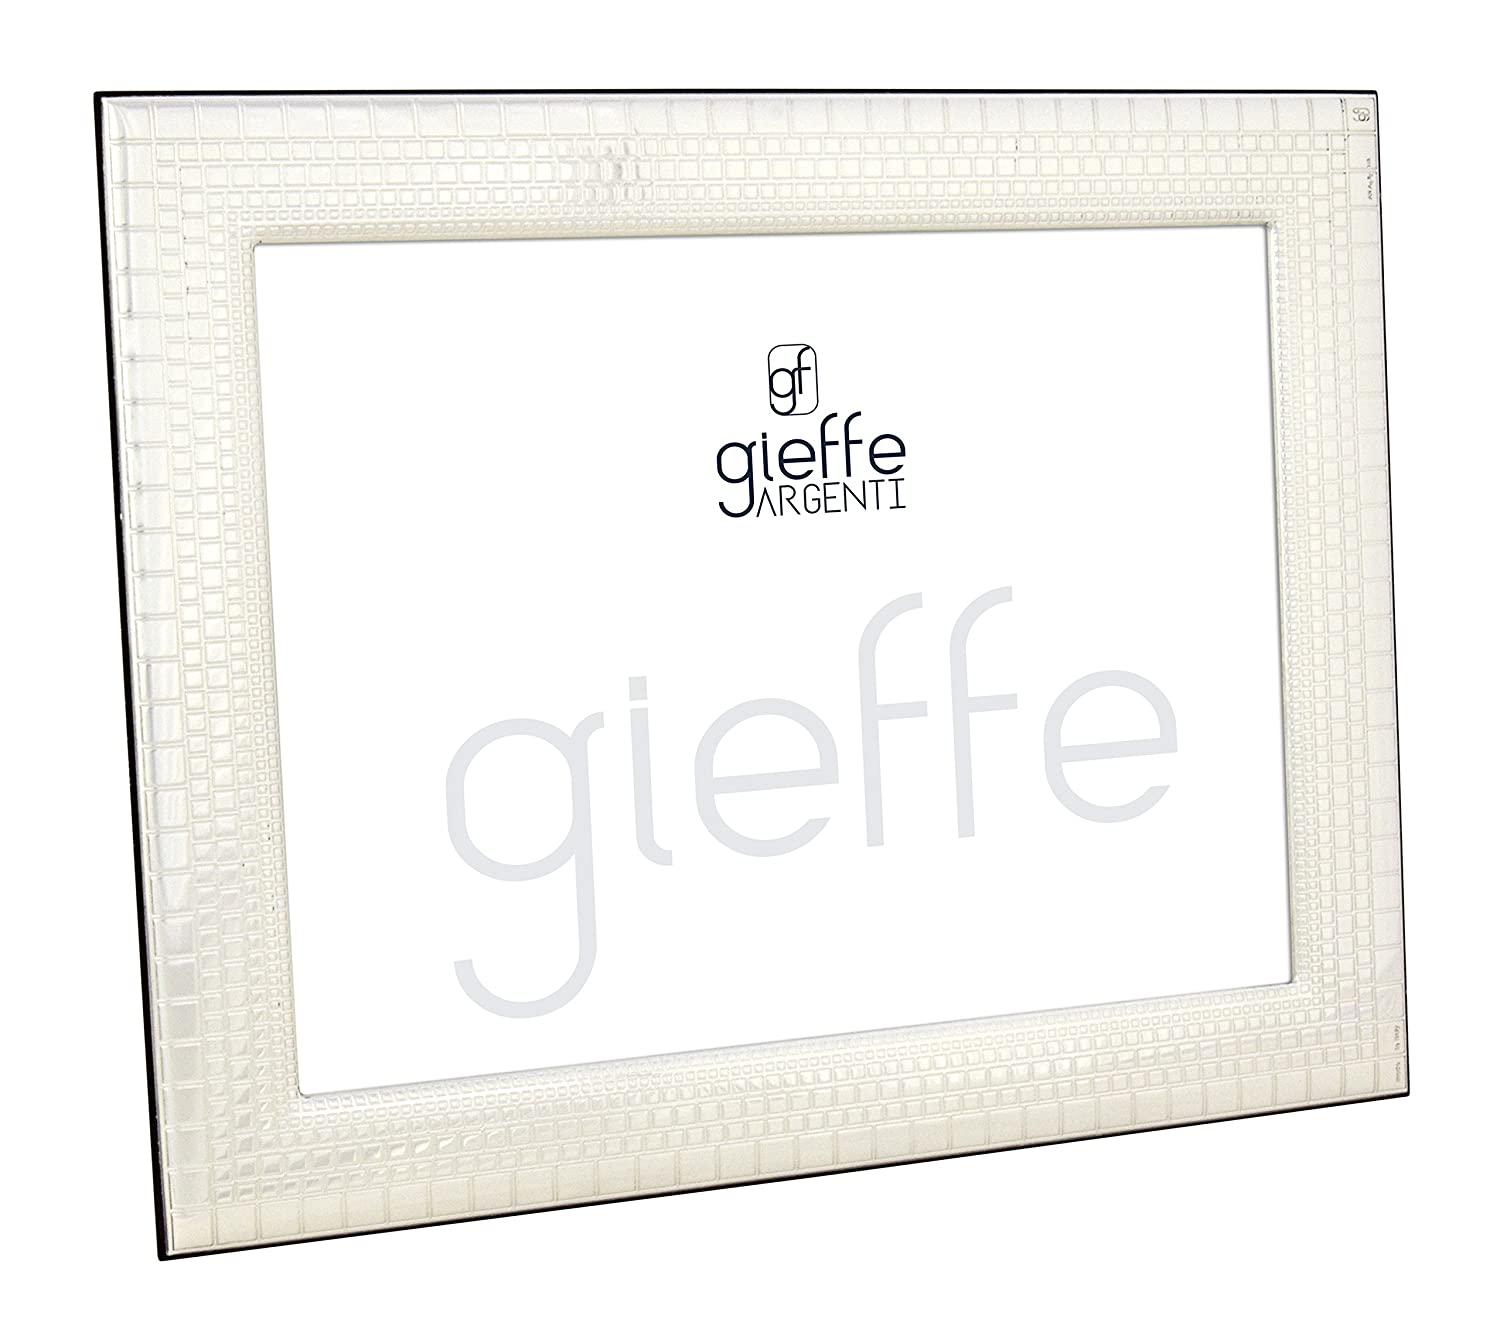 Boteghe - Real Made in Italy FIRENZE Marco para Foto Imagen Portarretrato Plata Made in Italy Hecho Mano Foto 18x24cm: Amazon.es: Hogar